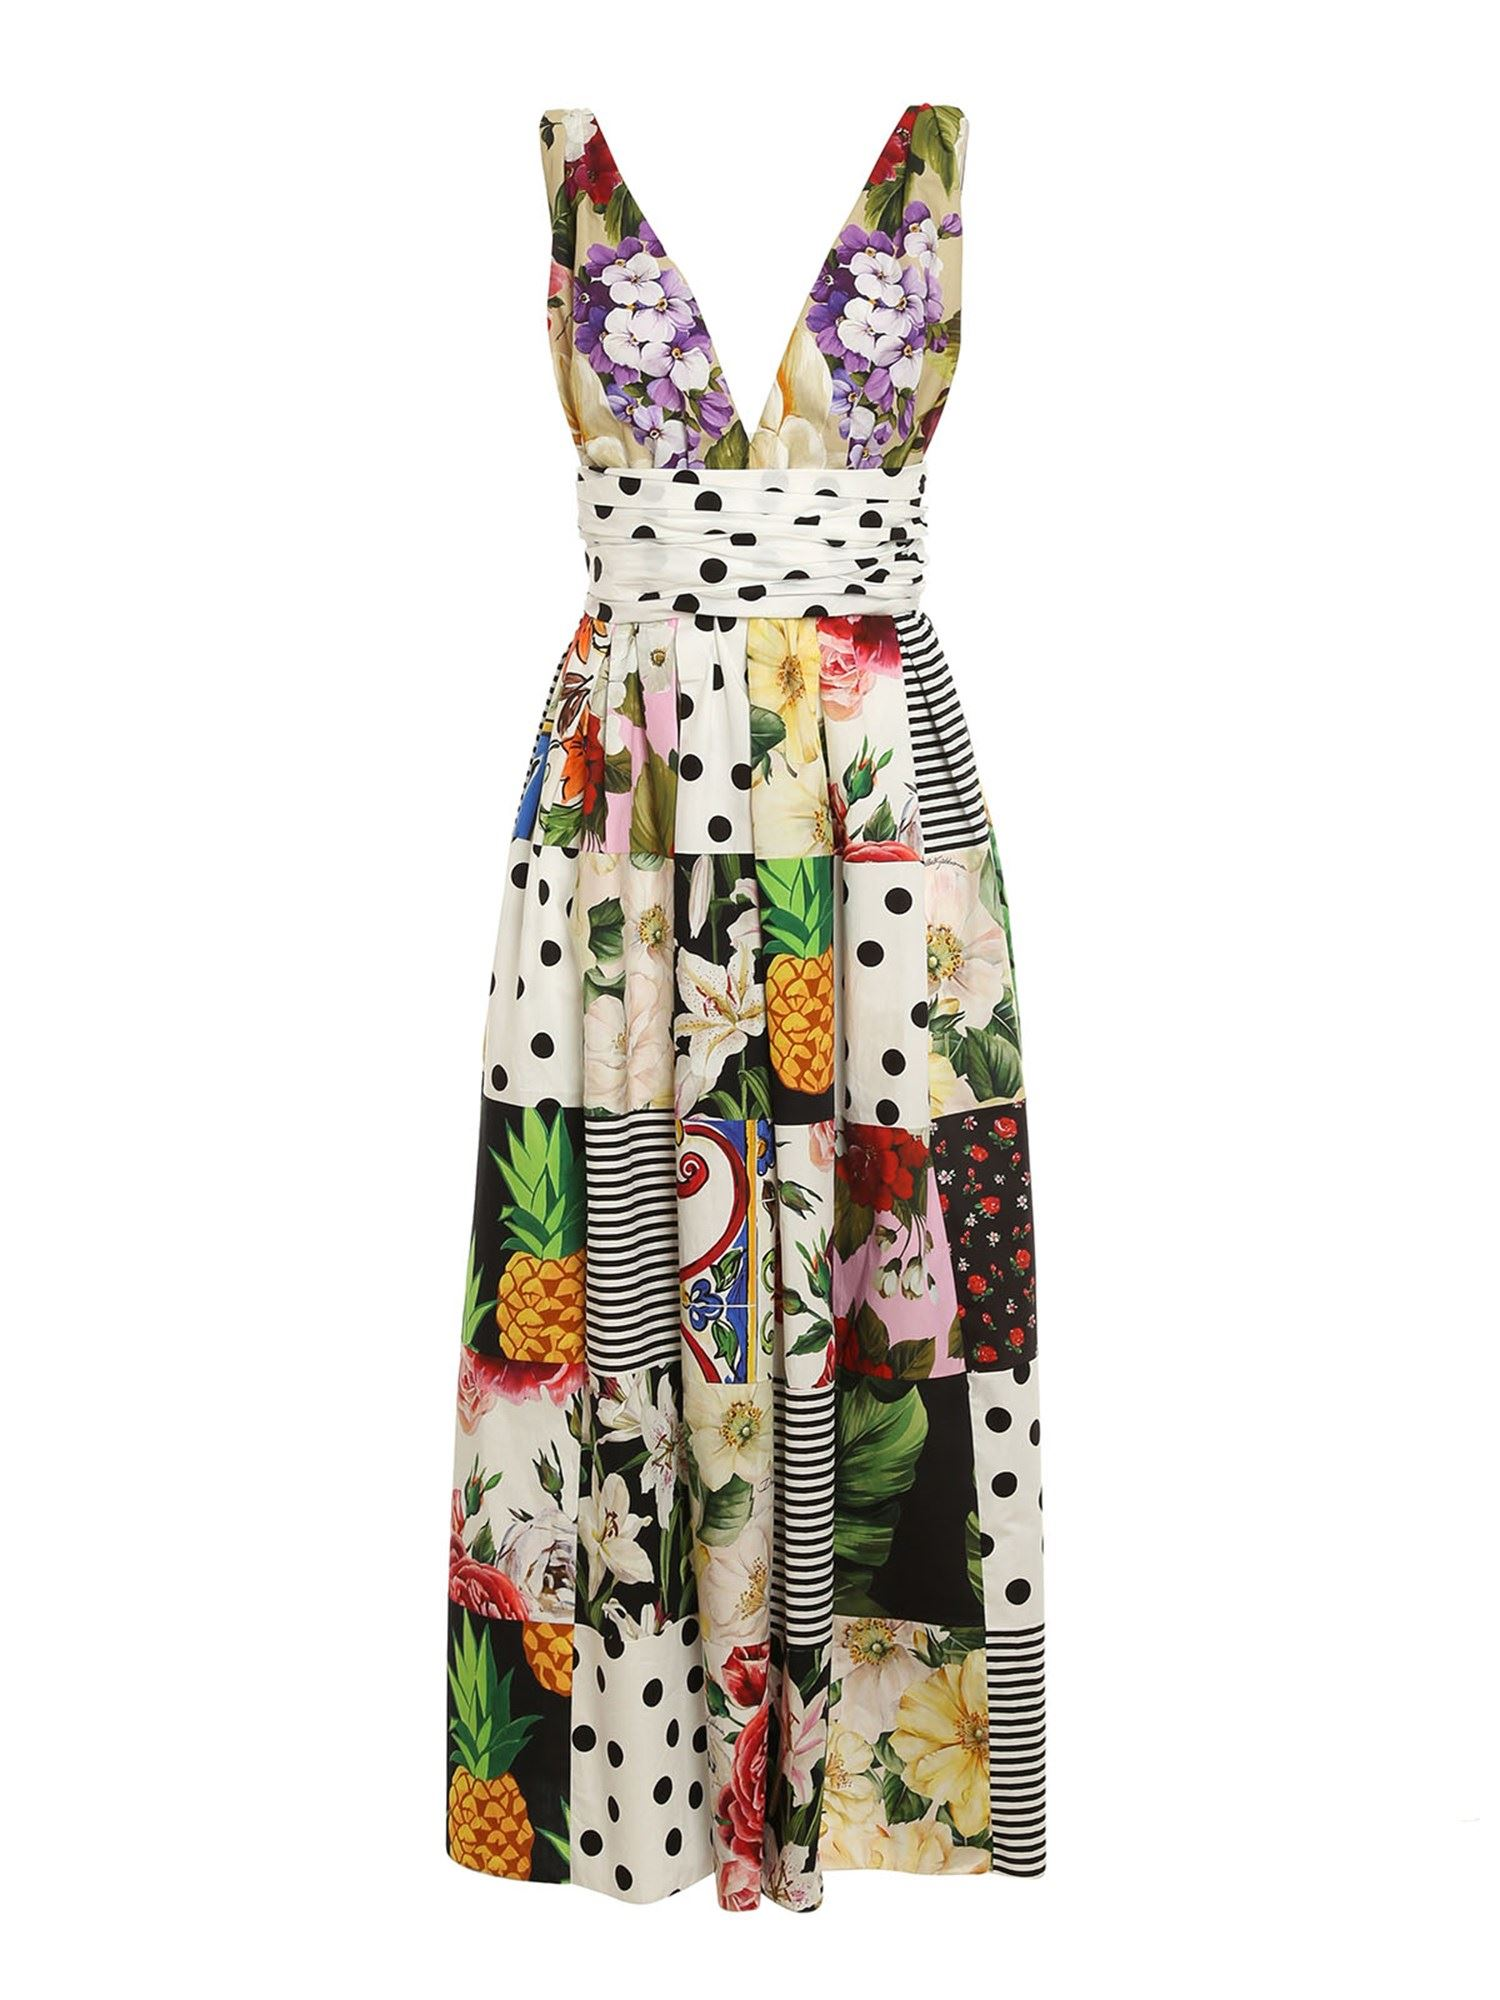 Dolce & Gabbana Cottons PATCHWORK PATTERNED DRESS IN MULTICOLOR